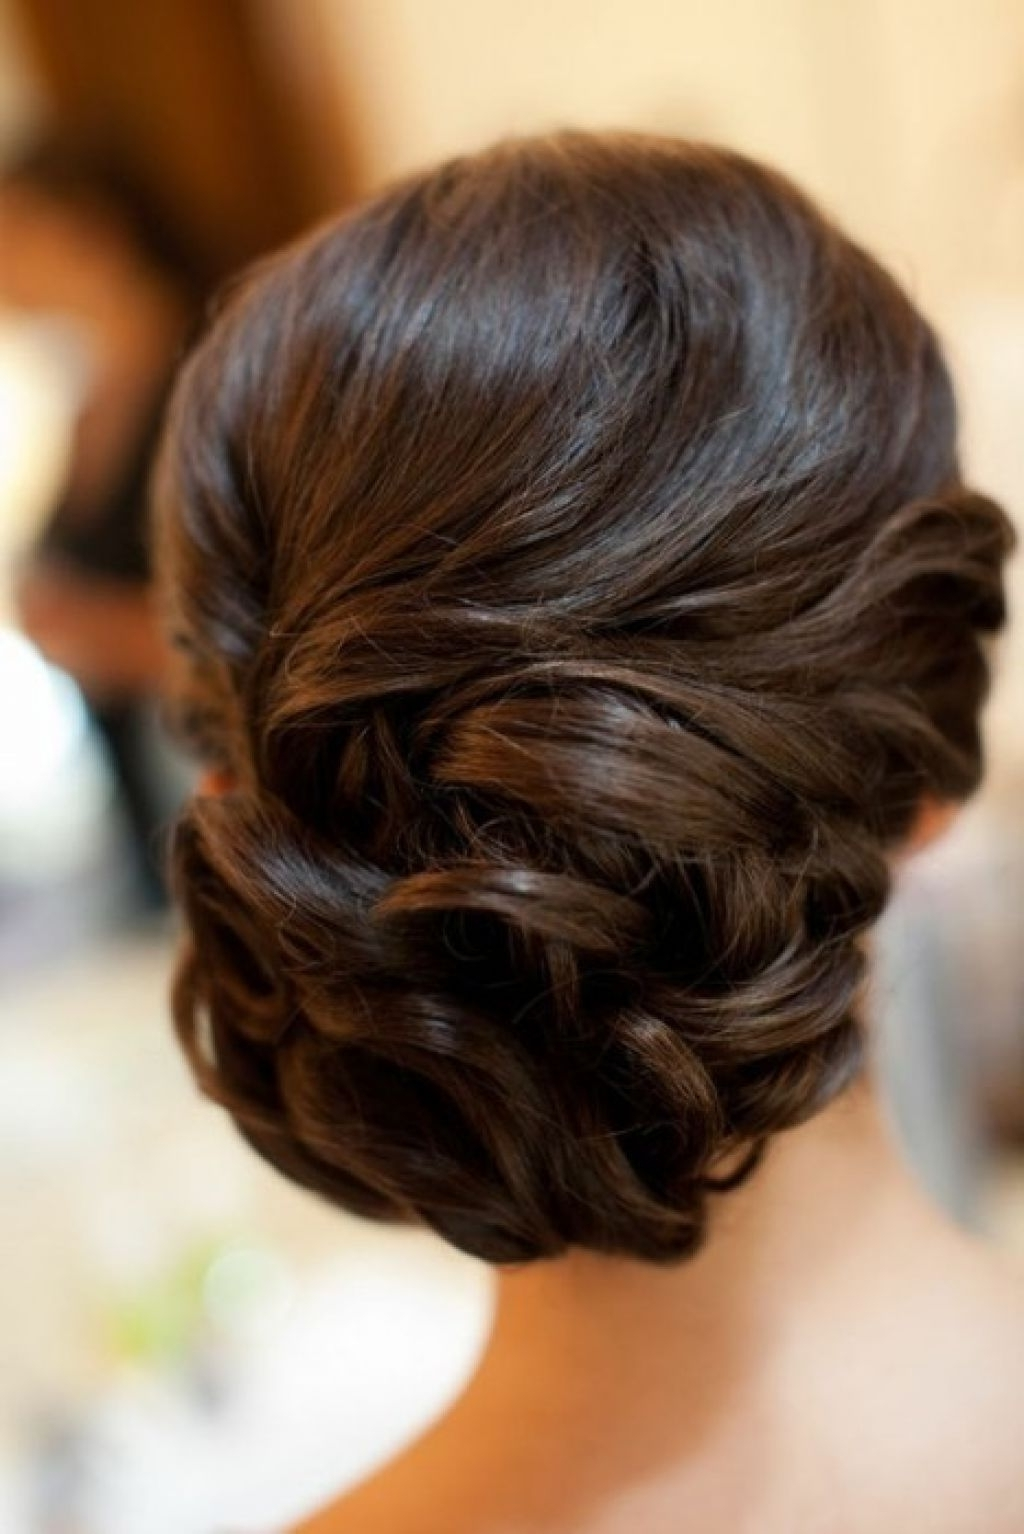 2017 Bridal Updo Hairstyles For Medium Length Hair Intended For Hair Dosr Wedding Wdding Hairdos Mdium Lovely Hairstyles Updos (View 2 of 15)